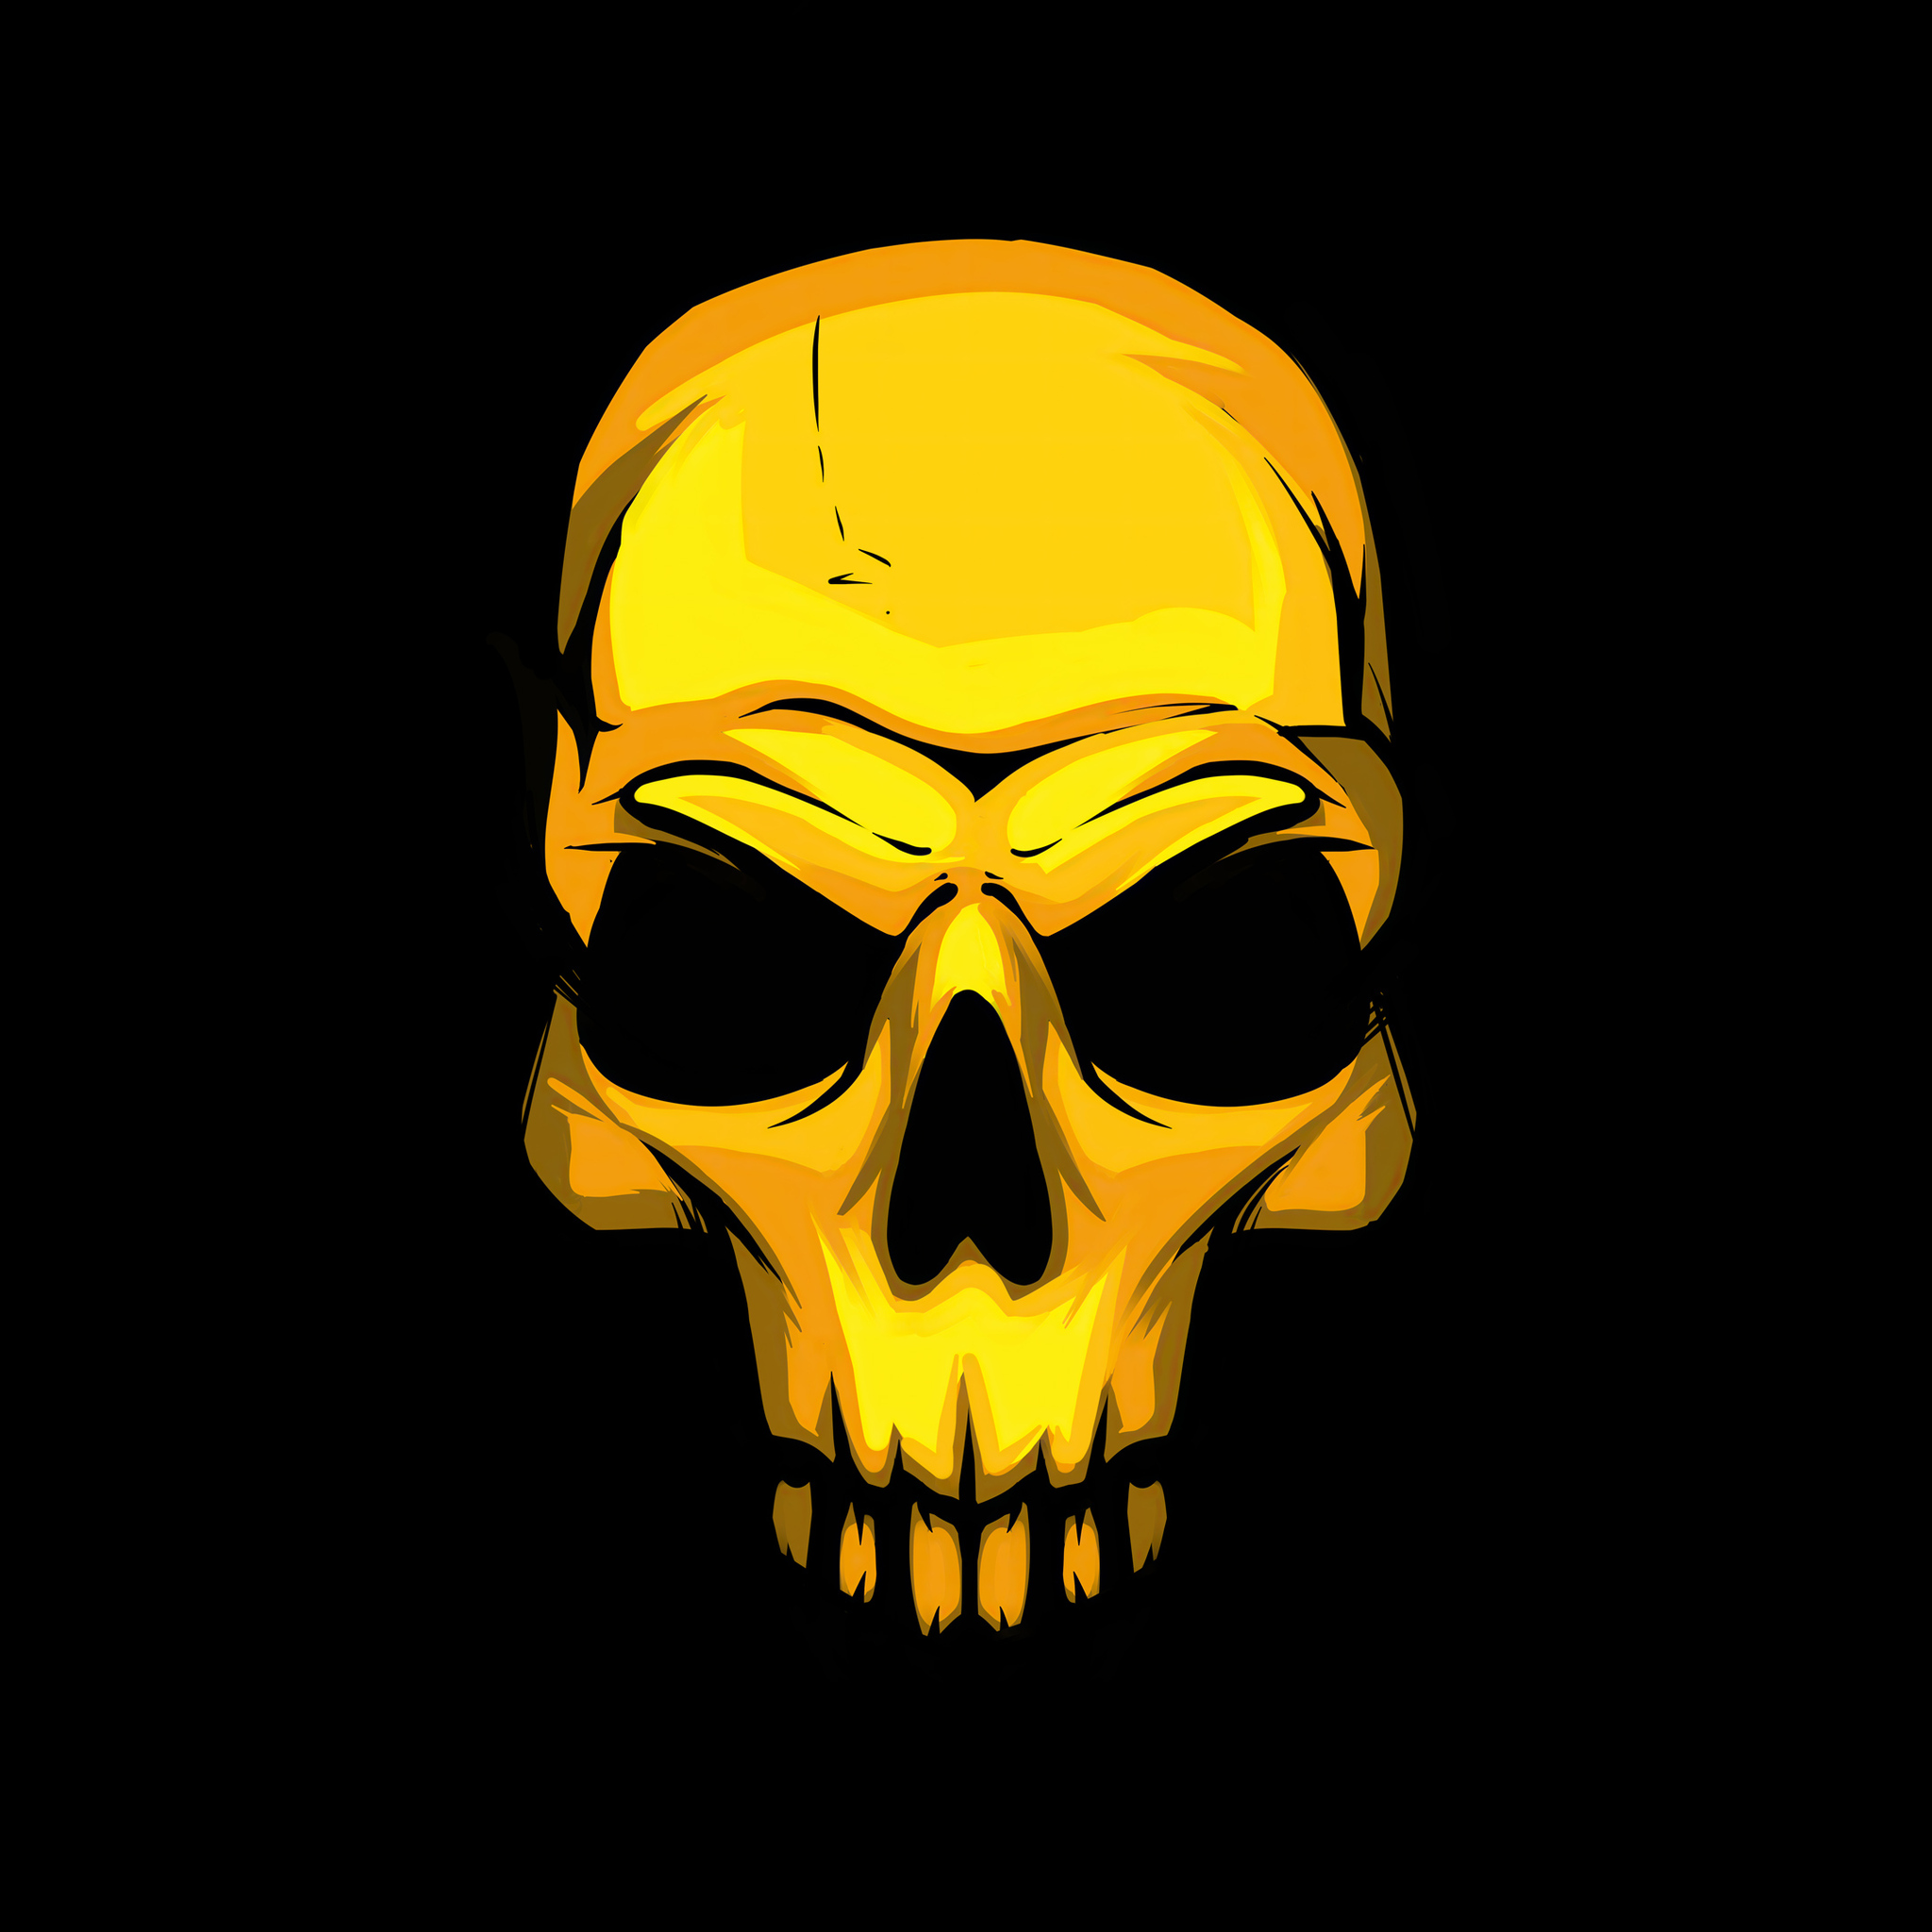 gold-skull-dark-background-4k-l4.jpg